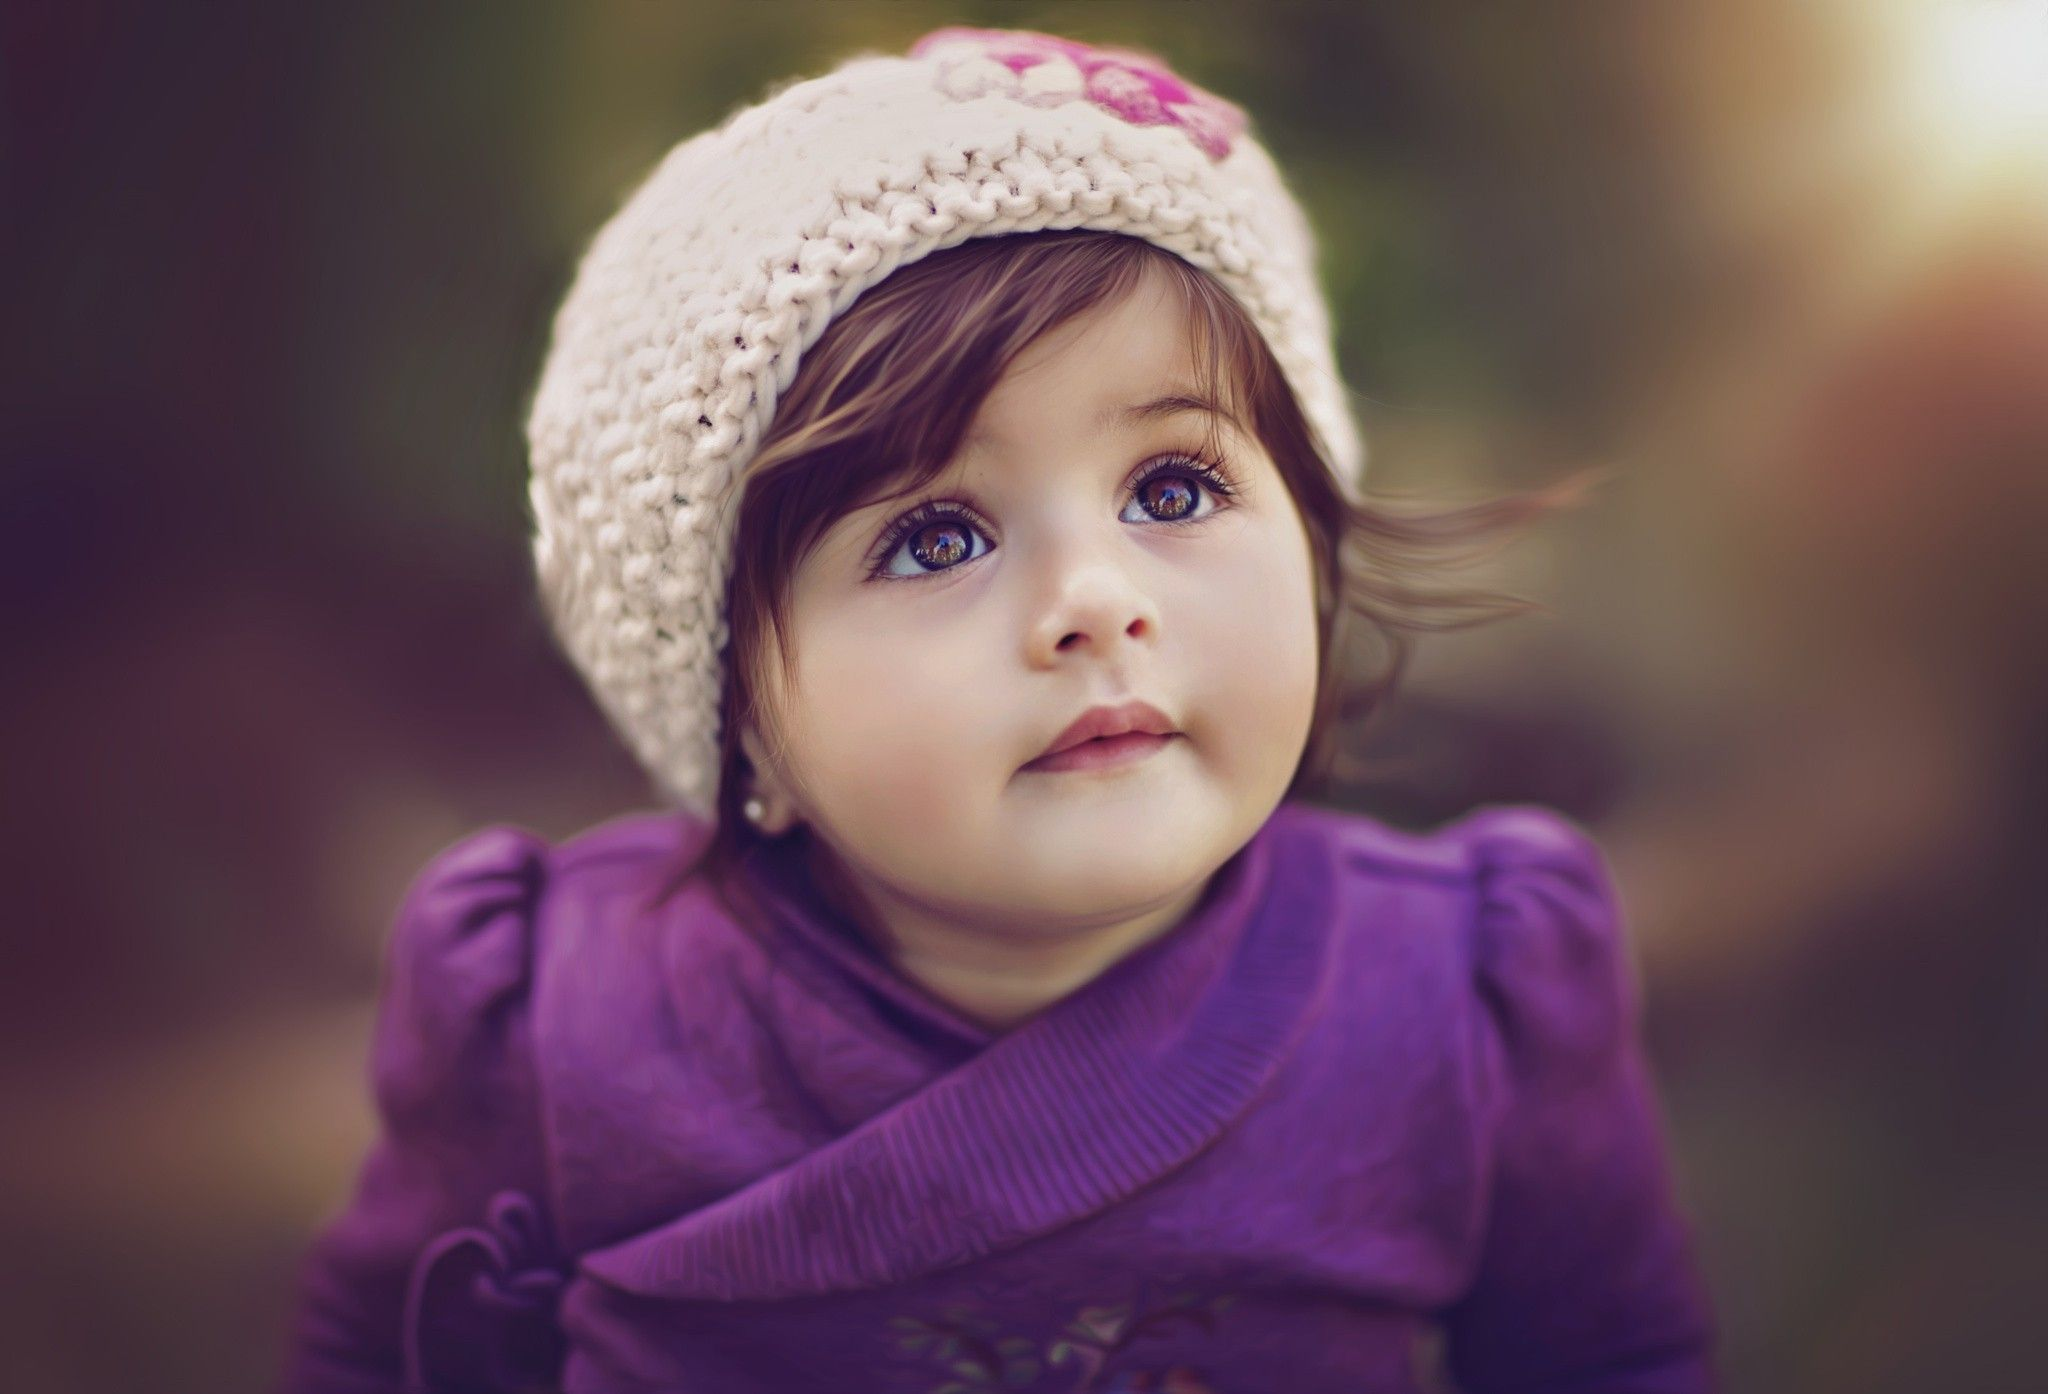 Small Girl HD Wallpapers - Top Free ...